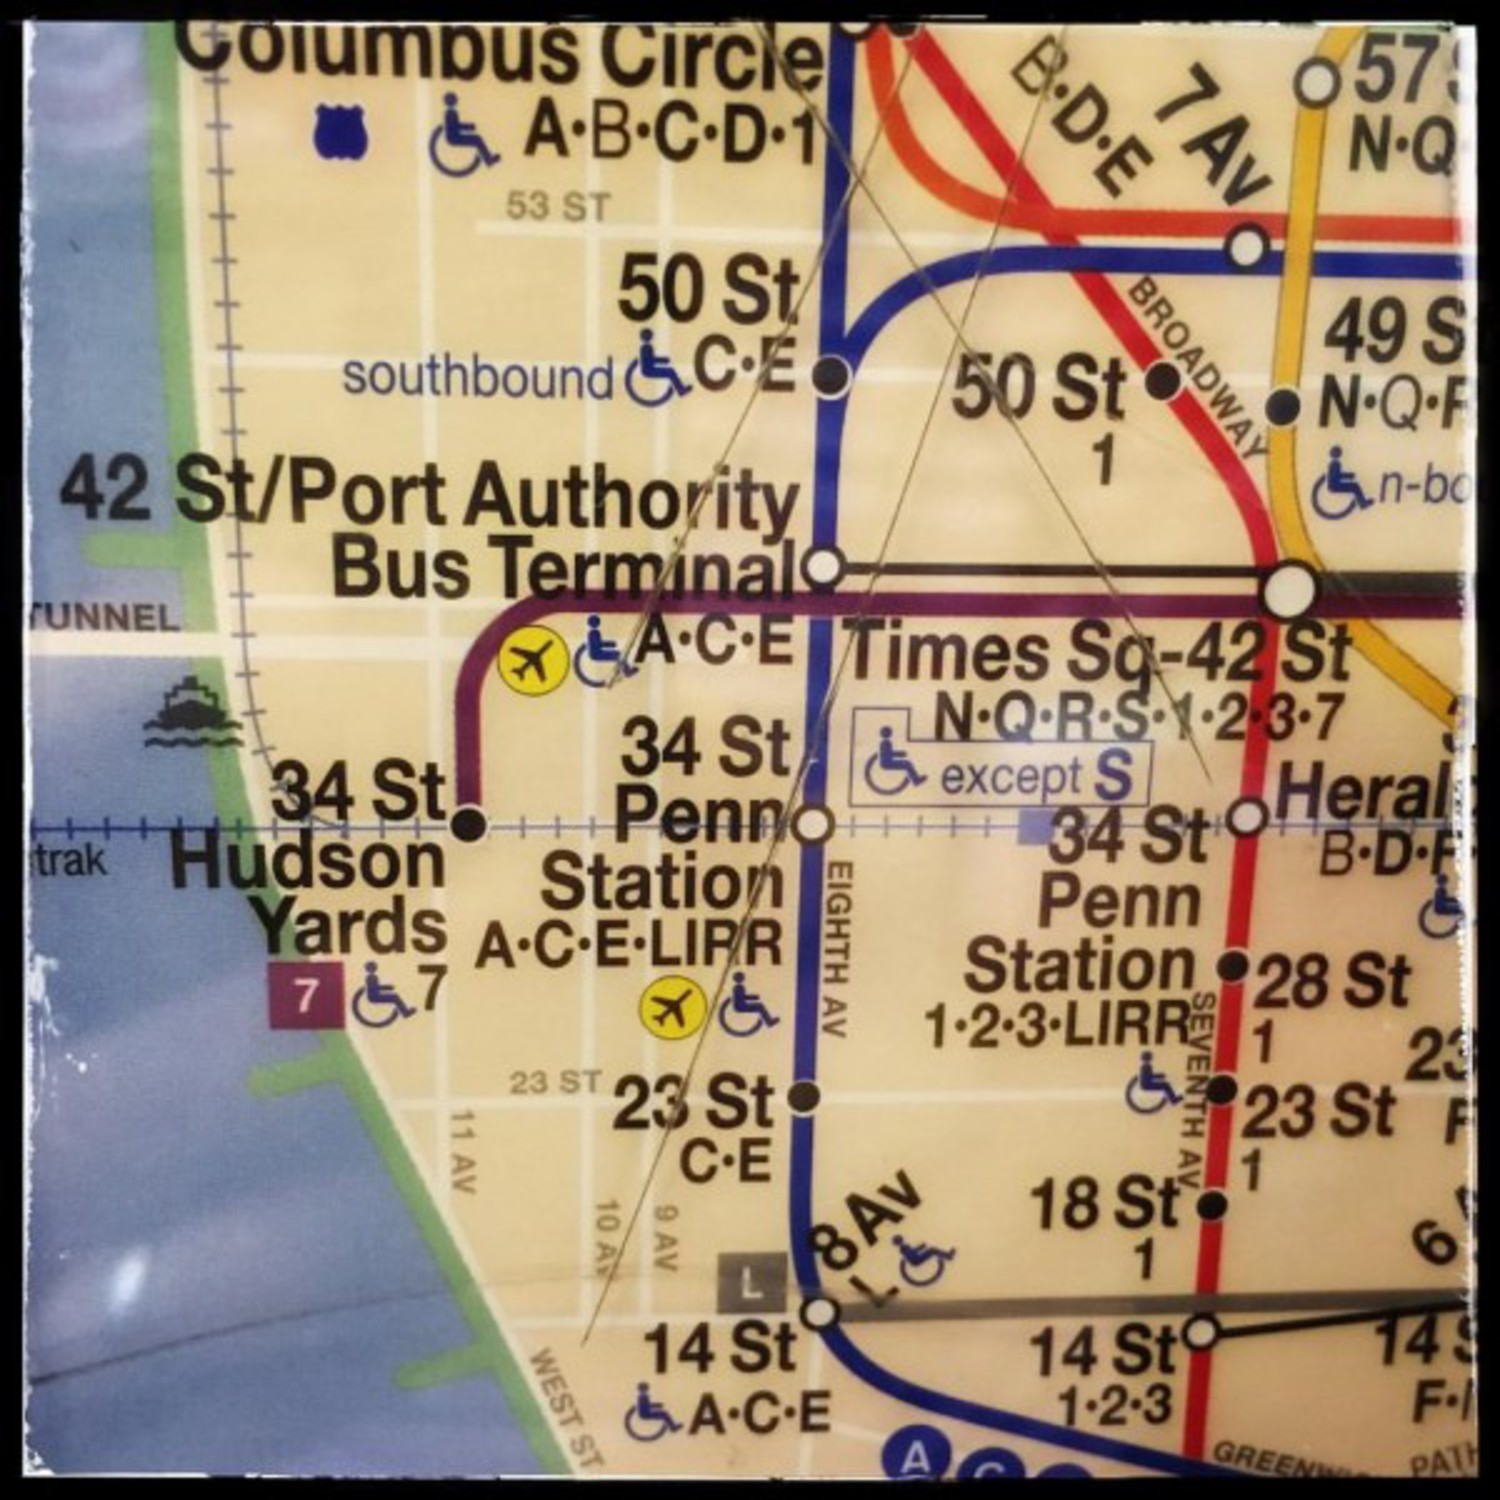 New 34th St / Hudson Yards Station appearing on MTA subway maps